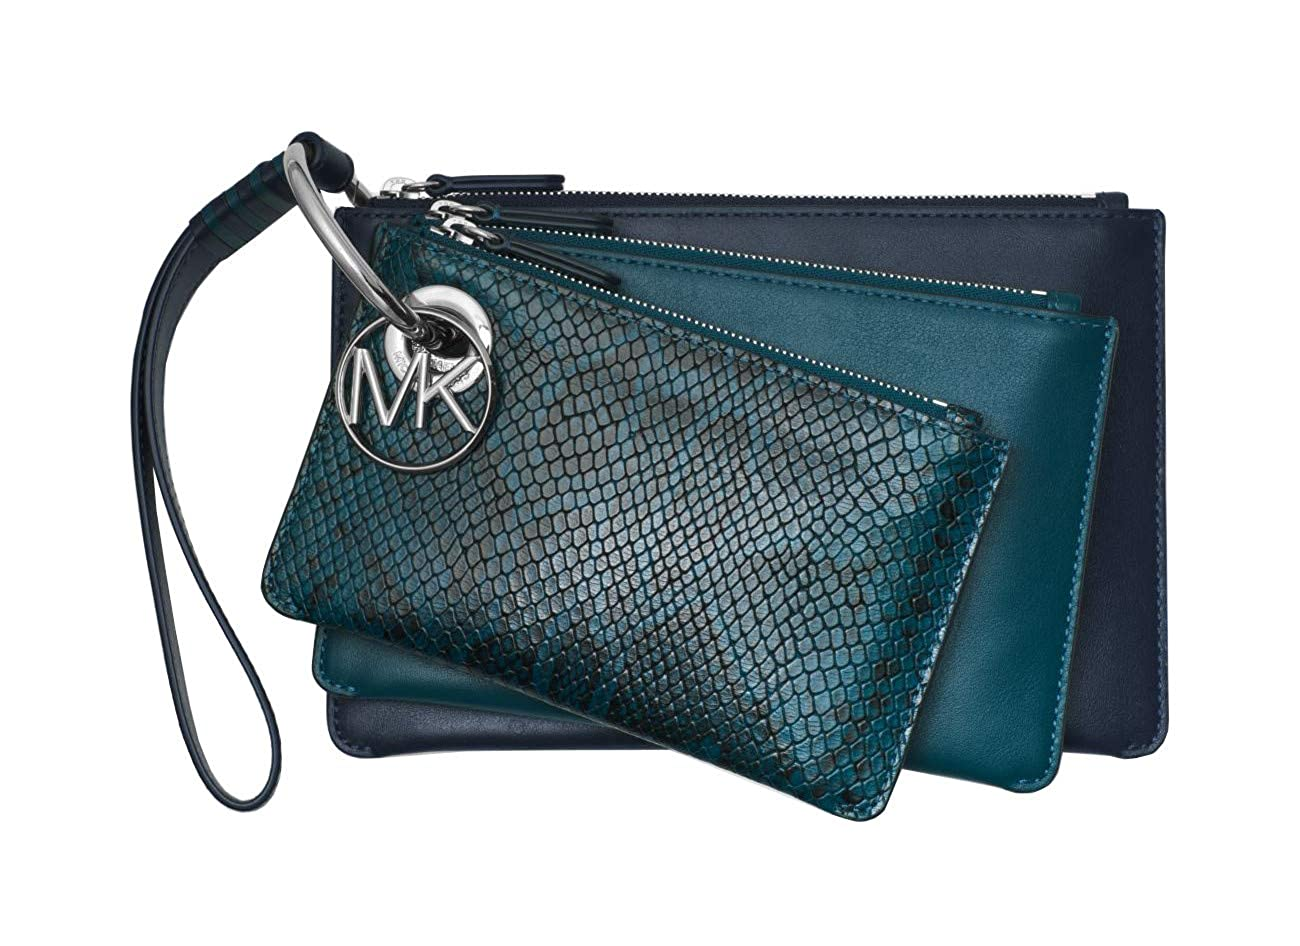 e0eed6c47938 Amazon.com  Michael Kors Tri-Color Leather Pouch Trio Clutch Wristlet  (Admiral Luex Teal)  Clothing